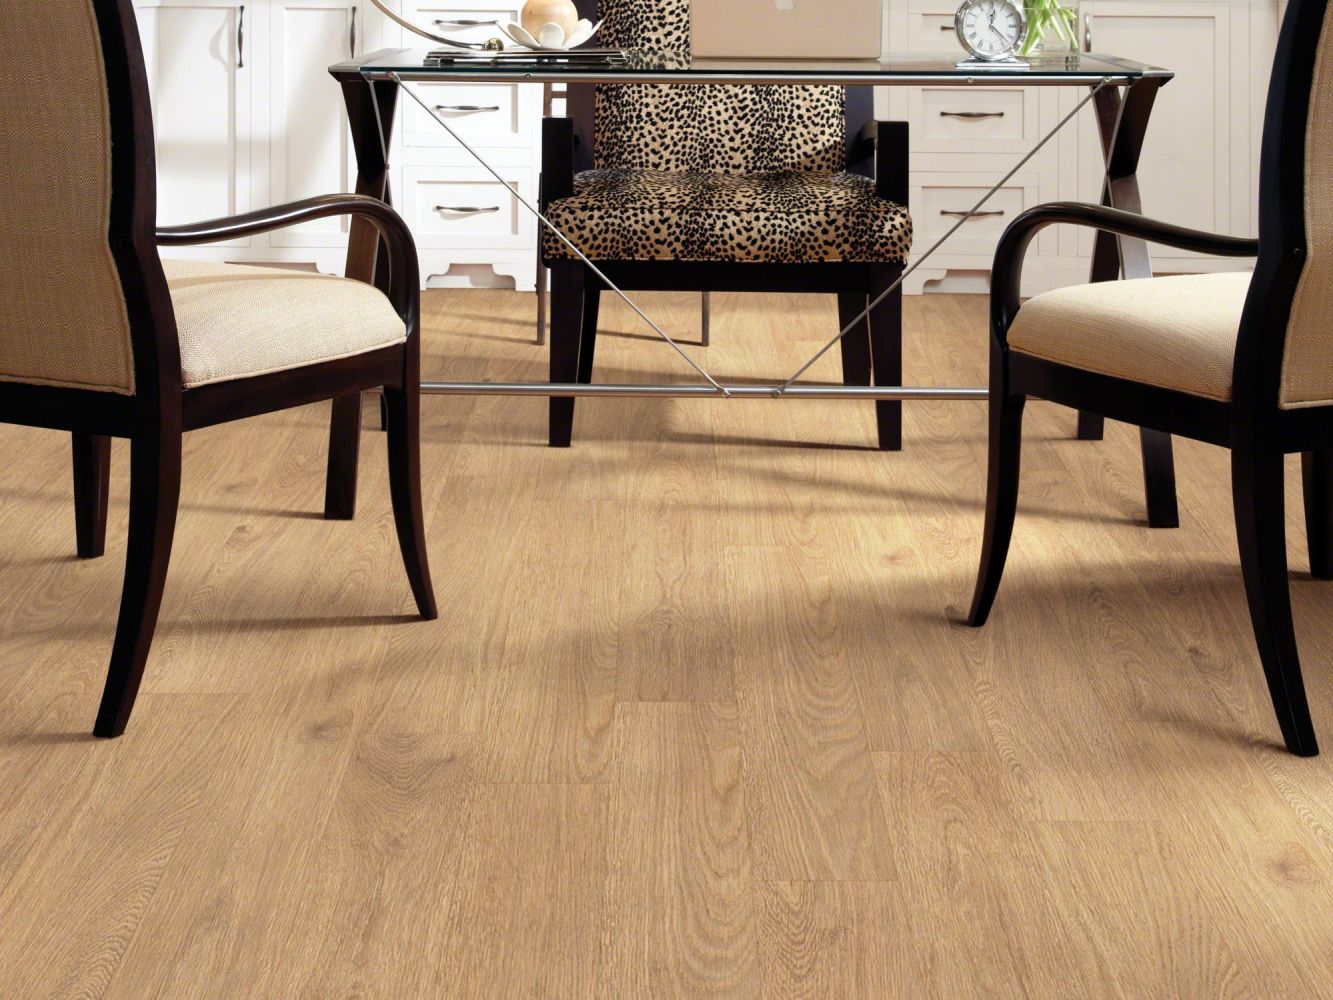 Shaw Floors Vinyl Residential Urbanality 6 Plank City Center 00247_0309V